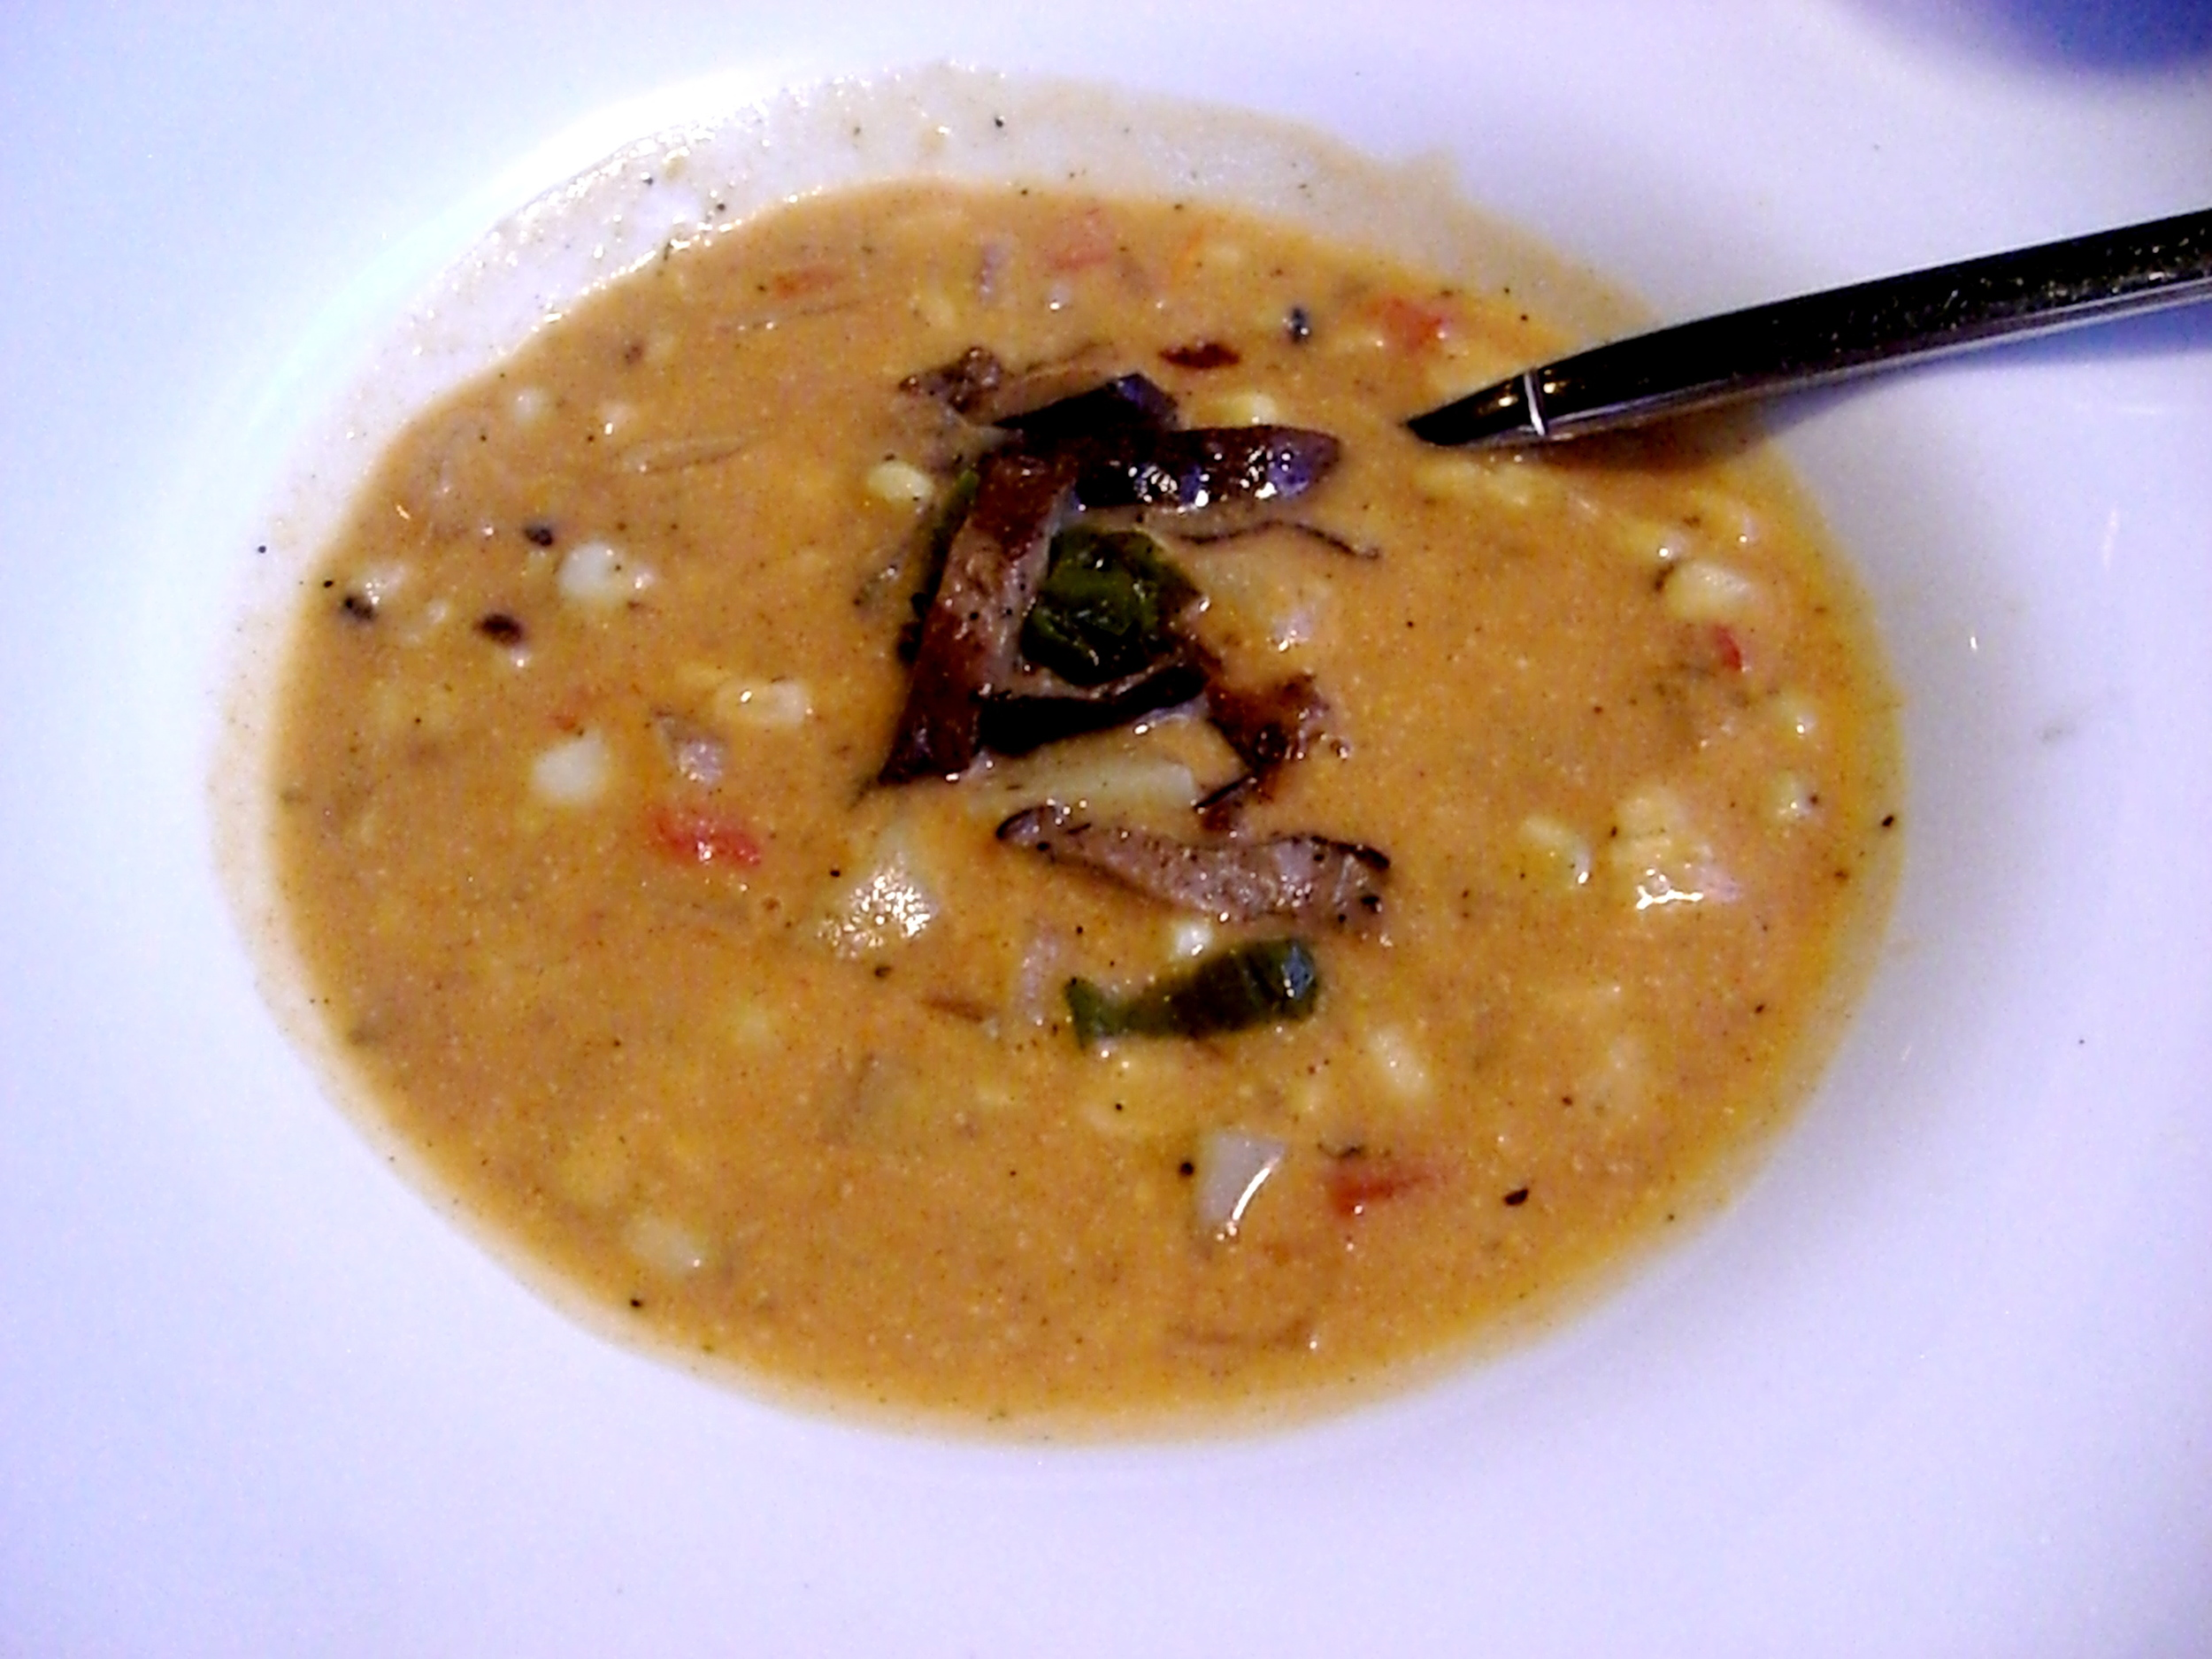 This vegan roasted corn chowder was totally tasty.